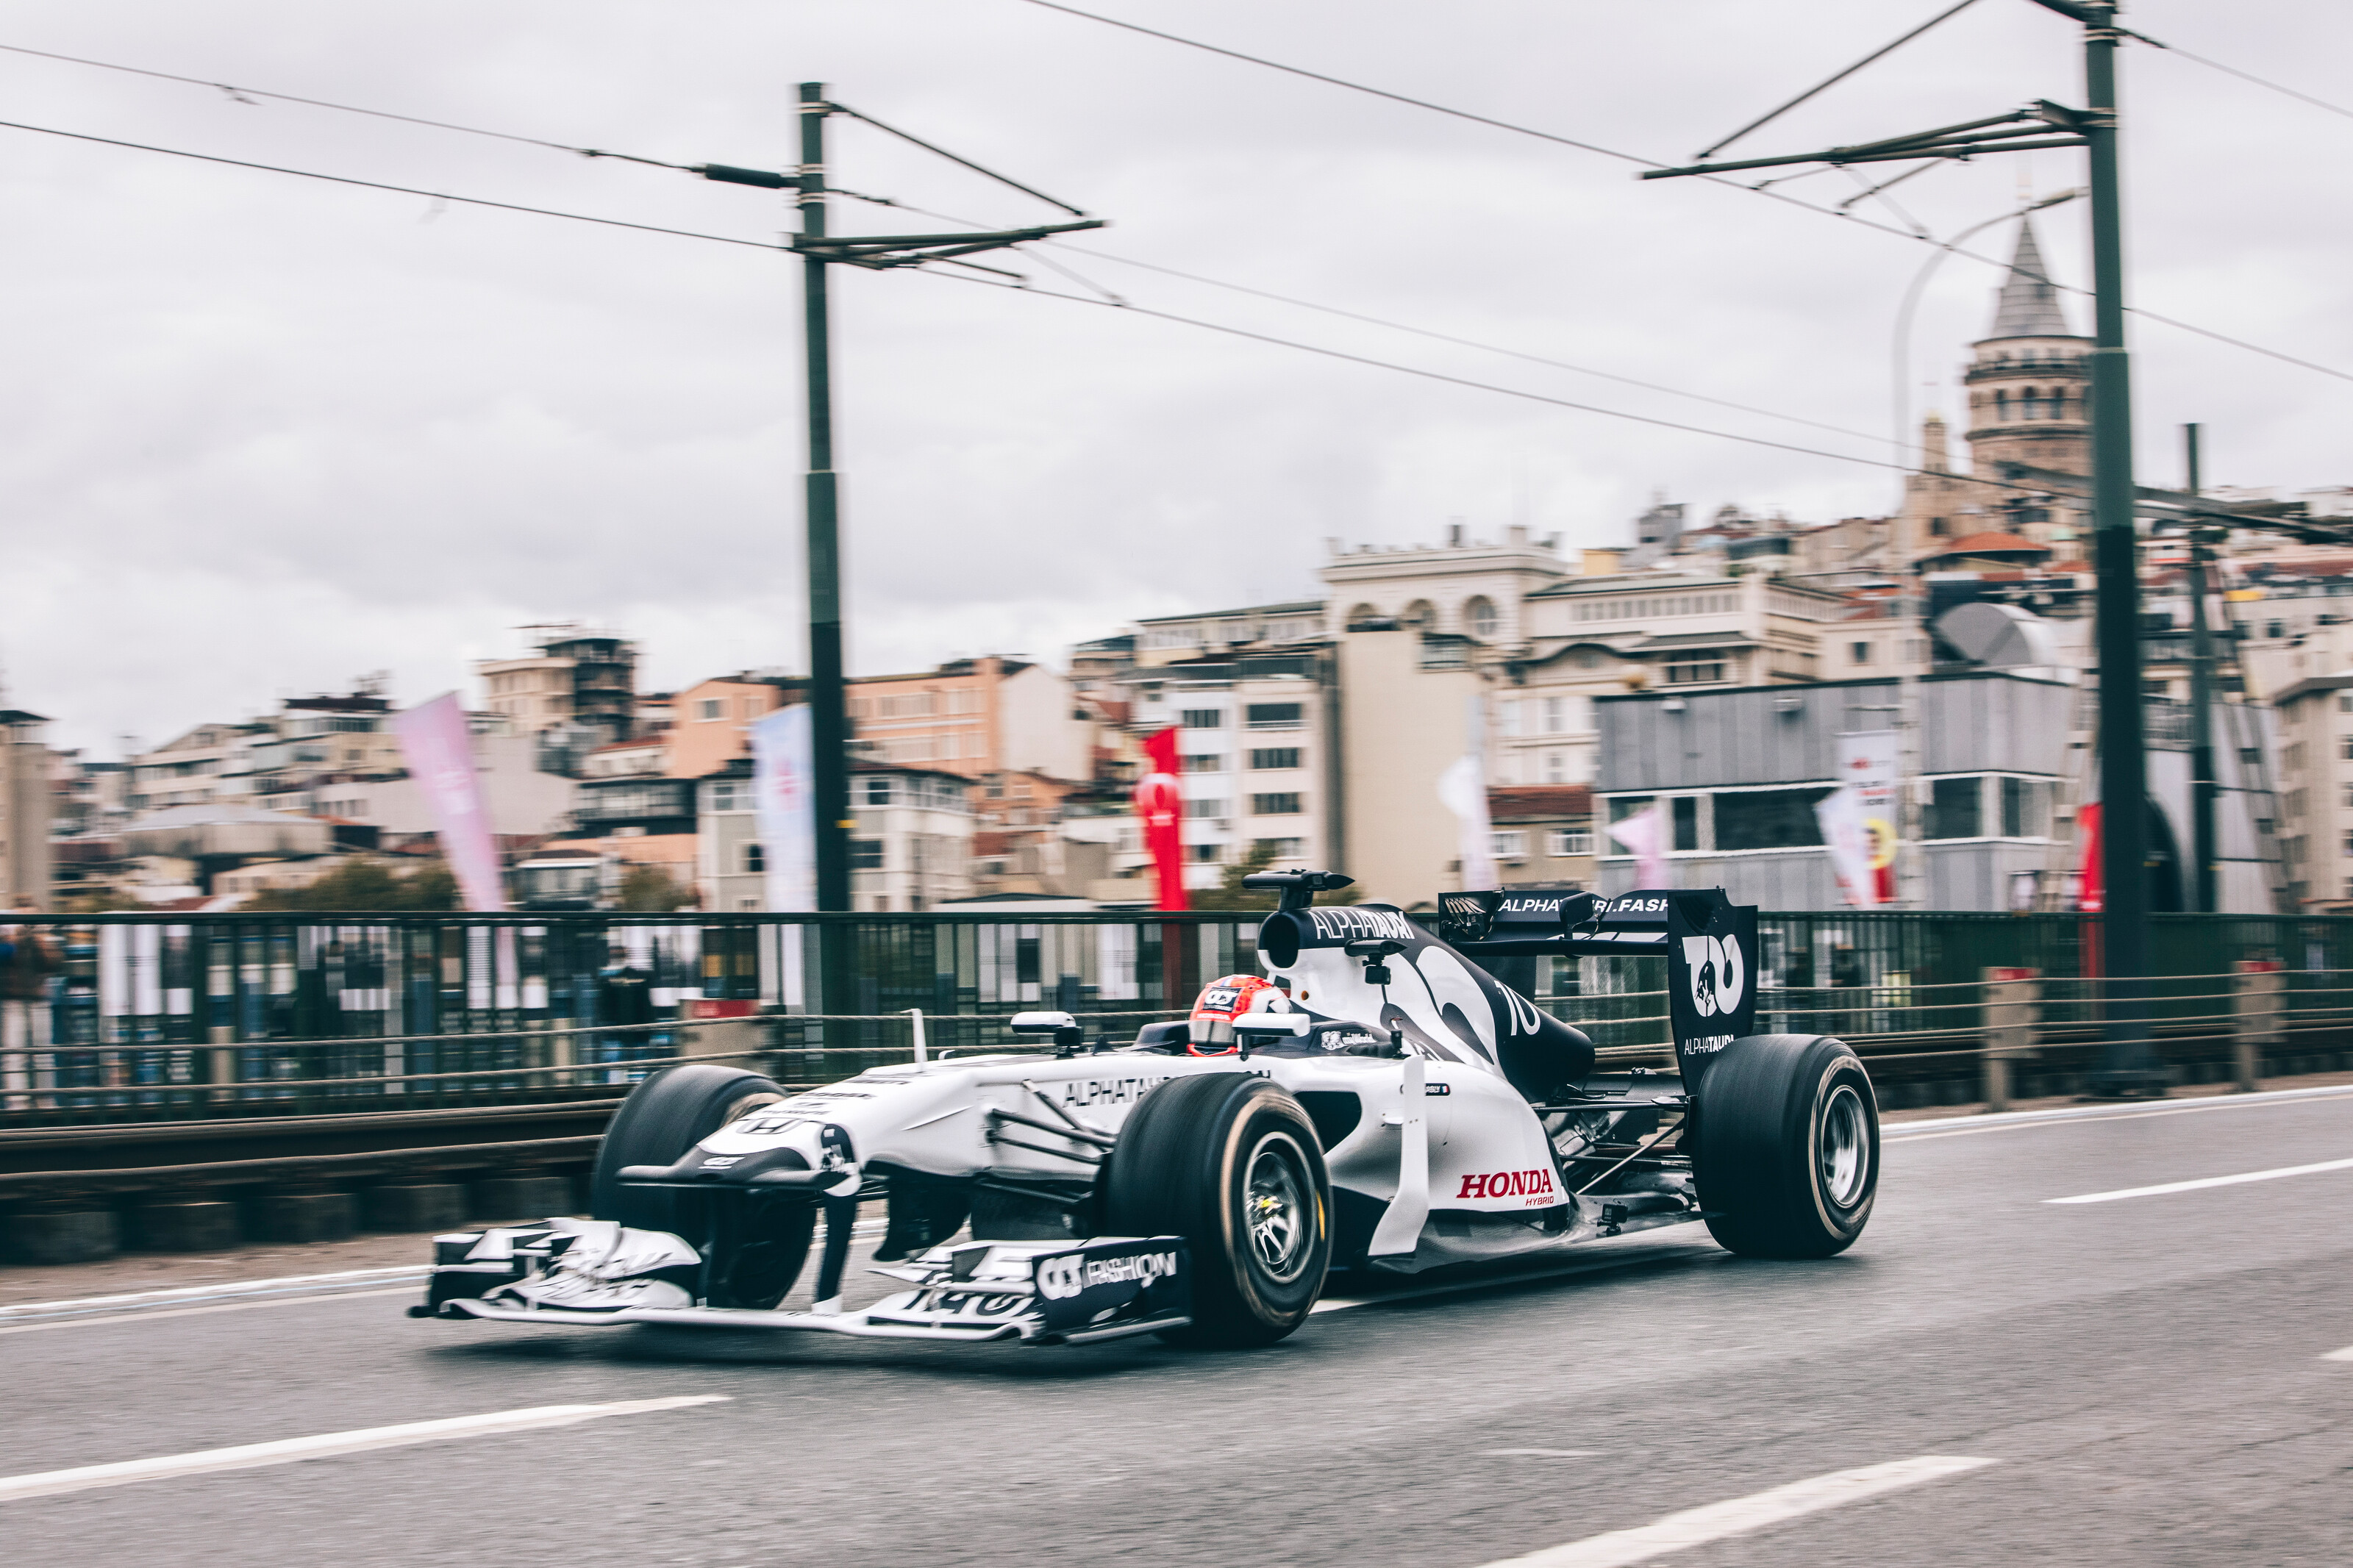 Pierre Gasly performs during Project Istanbulls in Istanbul, Turkey on November 10, 2020 // Nuri Yilmazer/Red Bull Content Pool // SI202011110003 // Usage for editorial use only //